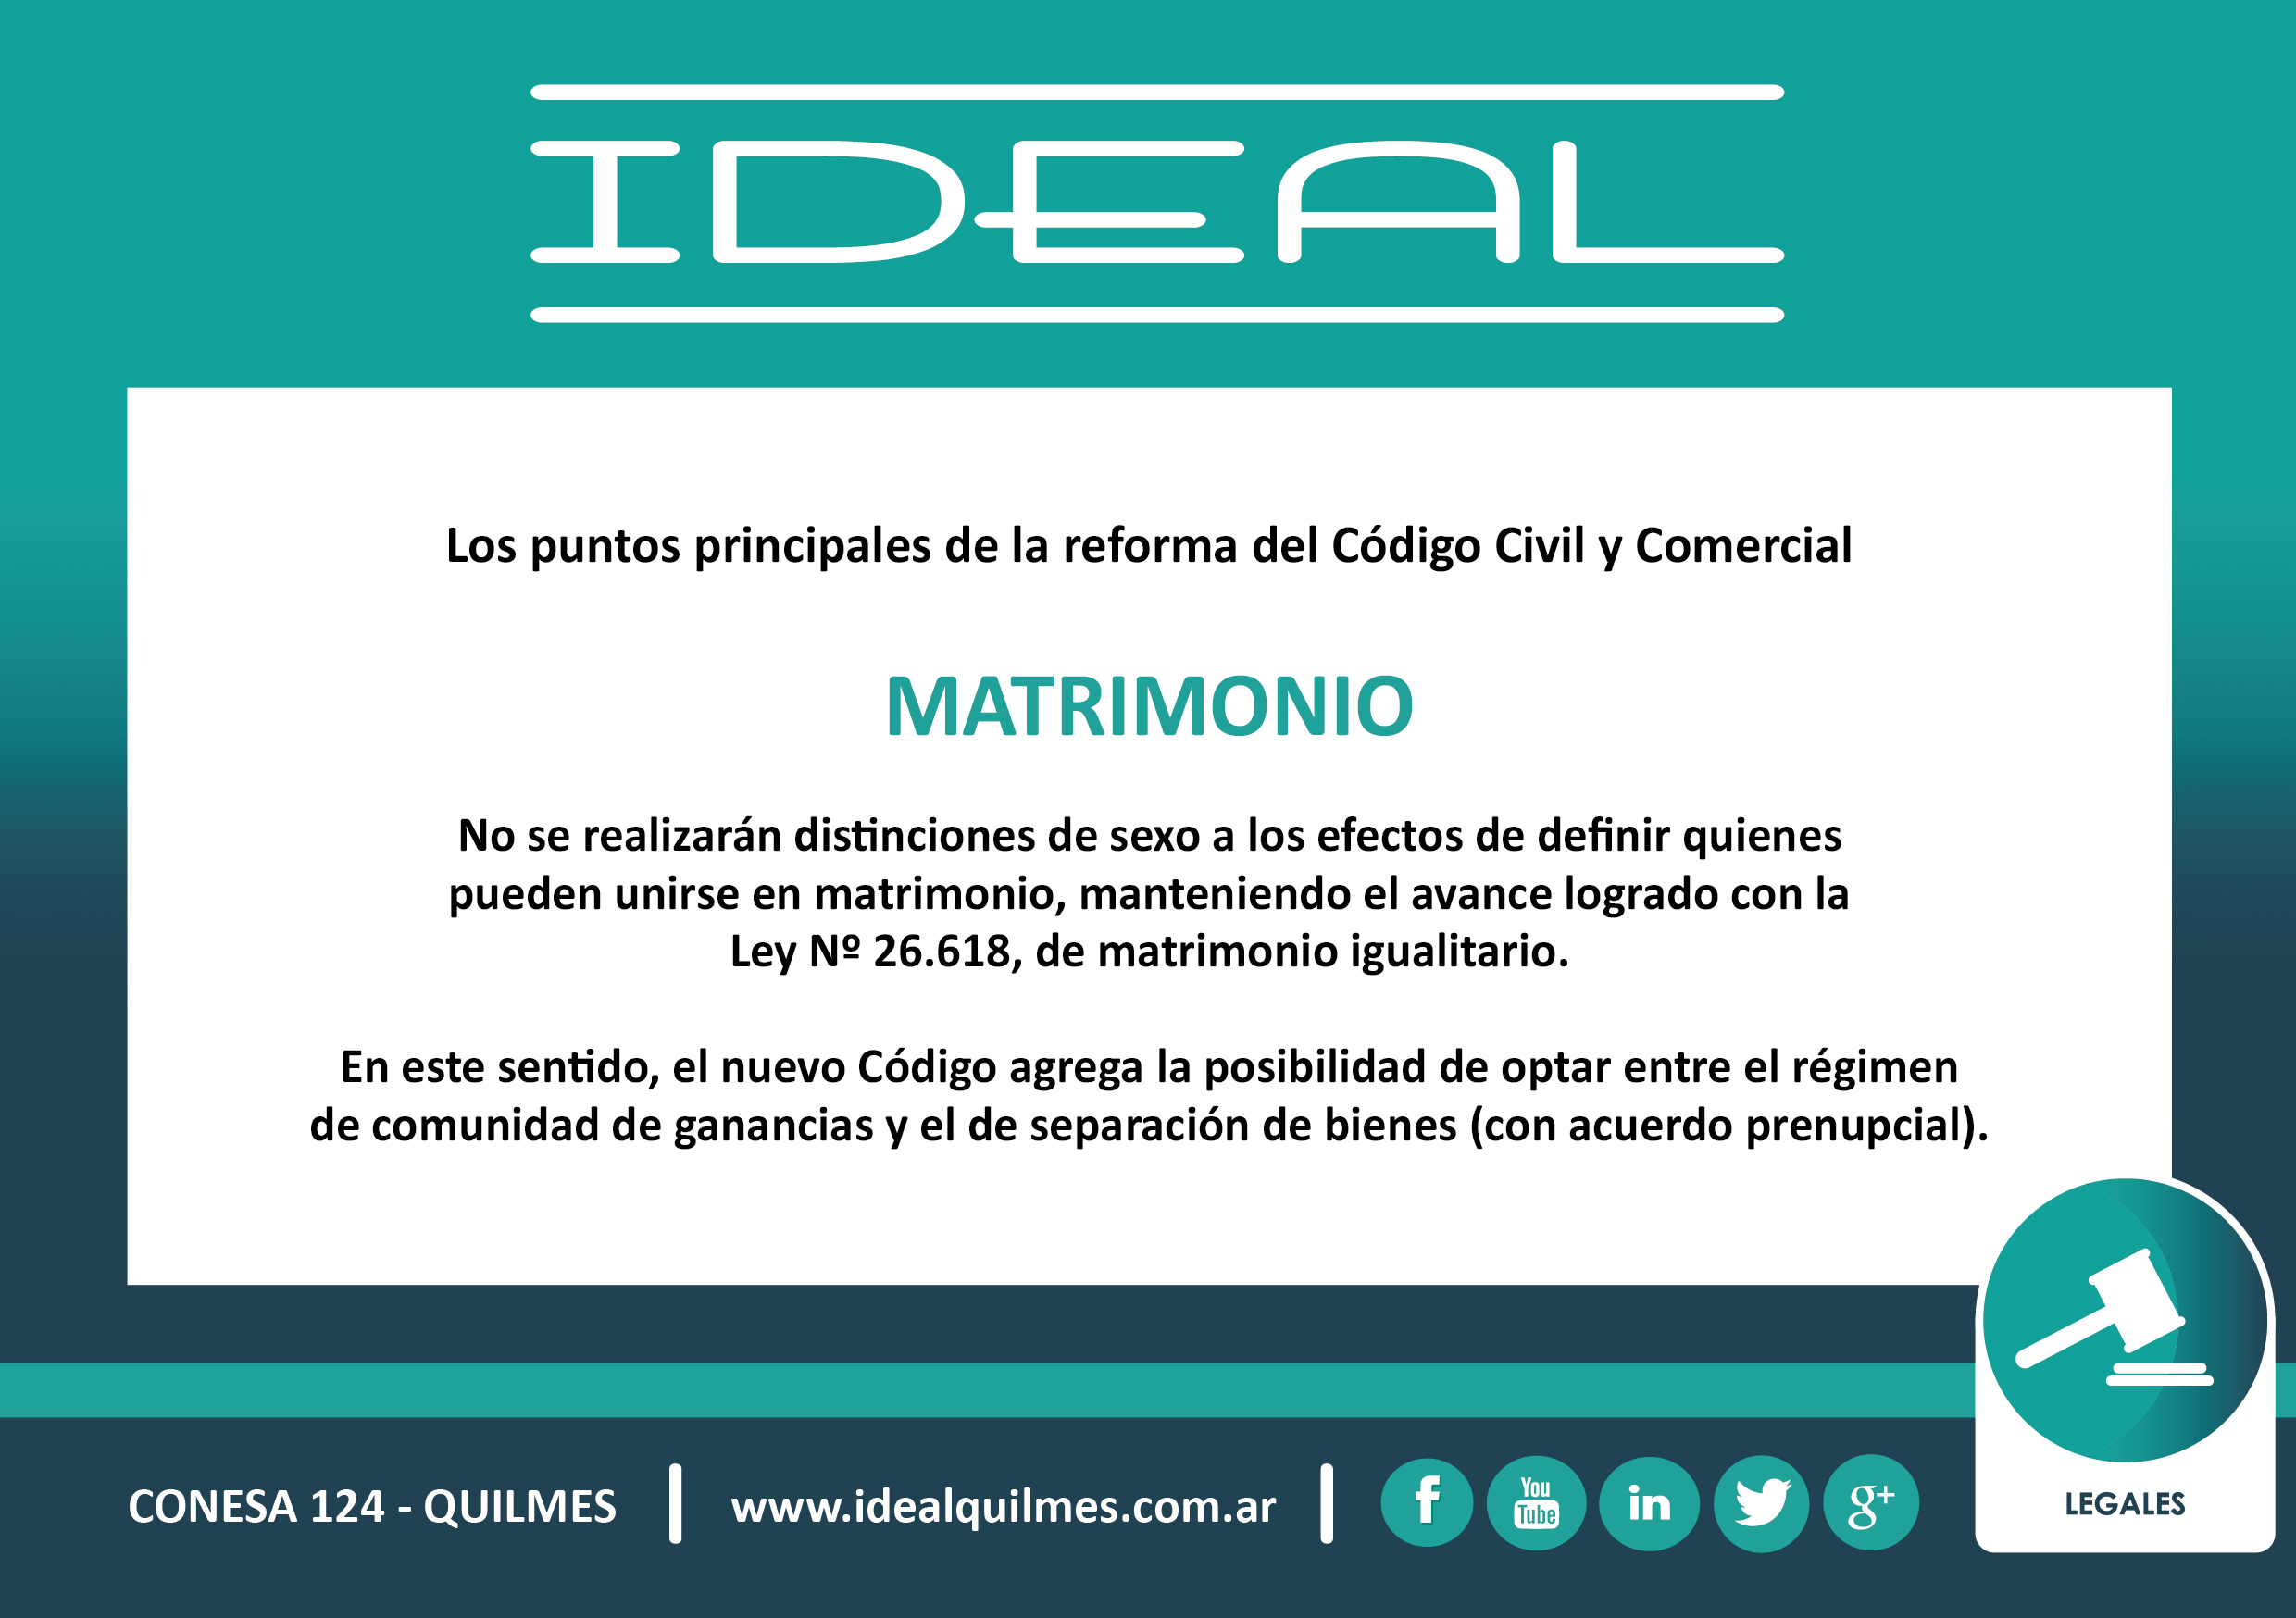 Matrimonio Uruguay Codigo Civil : Reforma del cÓdigo civil y comercial ideal